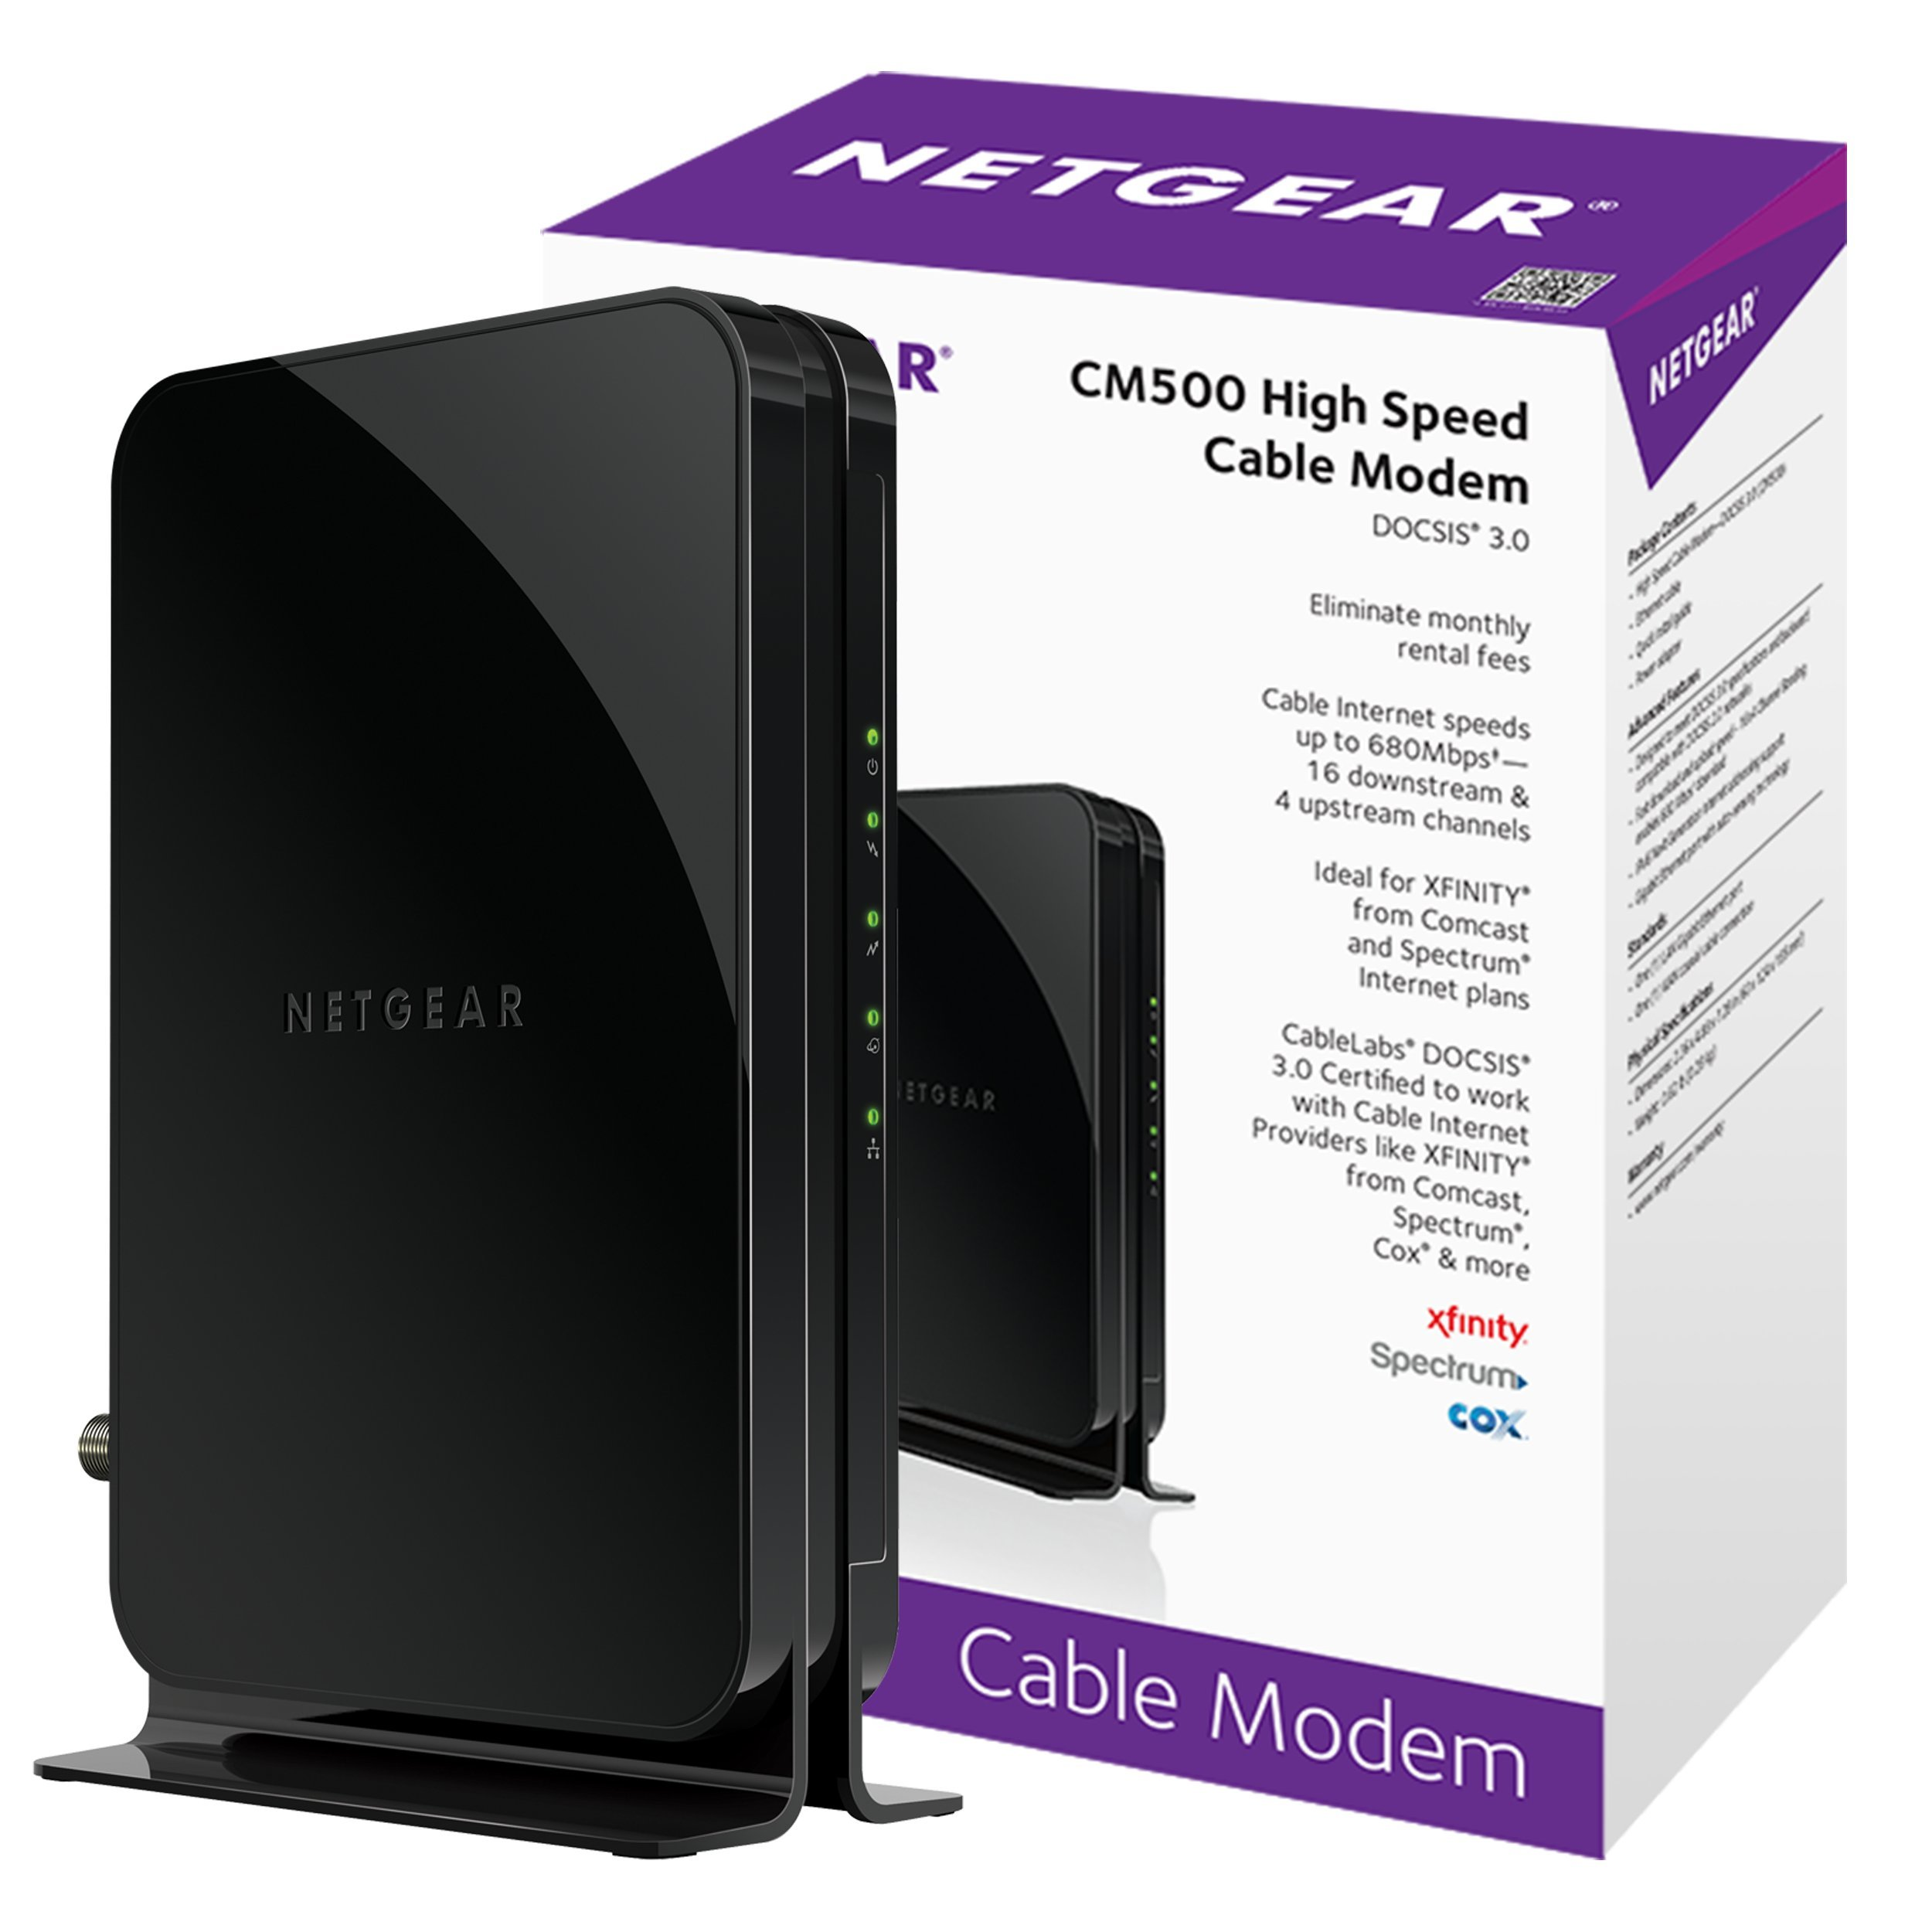 NETGEAR CM500 (16x4) DOCSIS 3.0 Cable Modem. Max download speeds of 680Mbps. Certified for XFINITY by Comcast, Time Warner Cable, Cox, Charter & more (CM500)